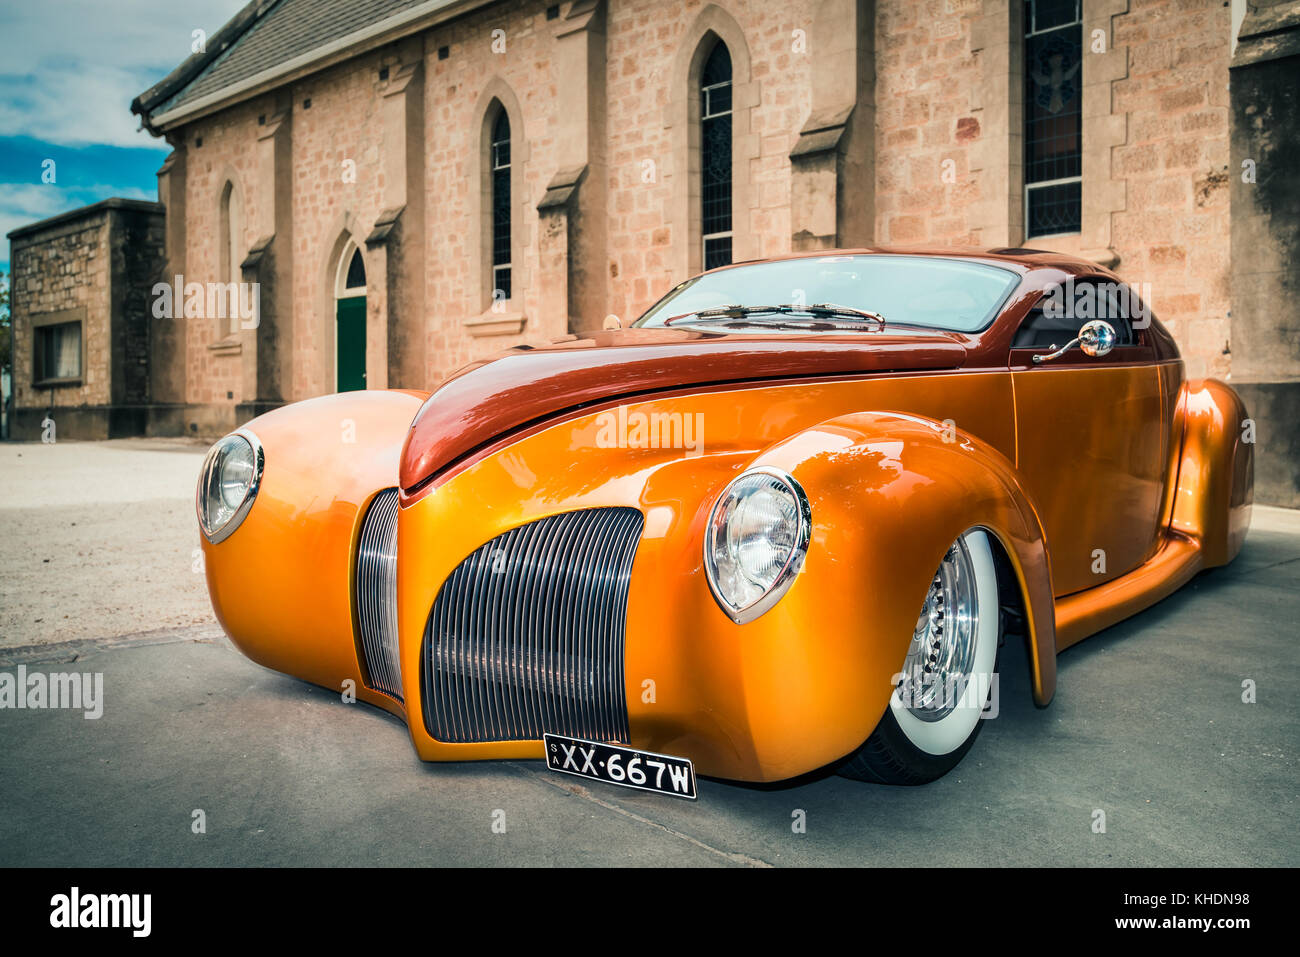 Barossa Valley, South Australia, January 16, 2016: 1939 Lincoln Zephyr car parked near old church at main street - Stock Image